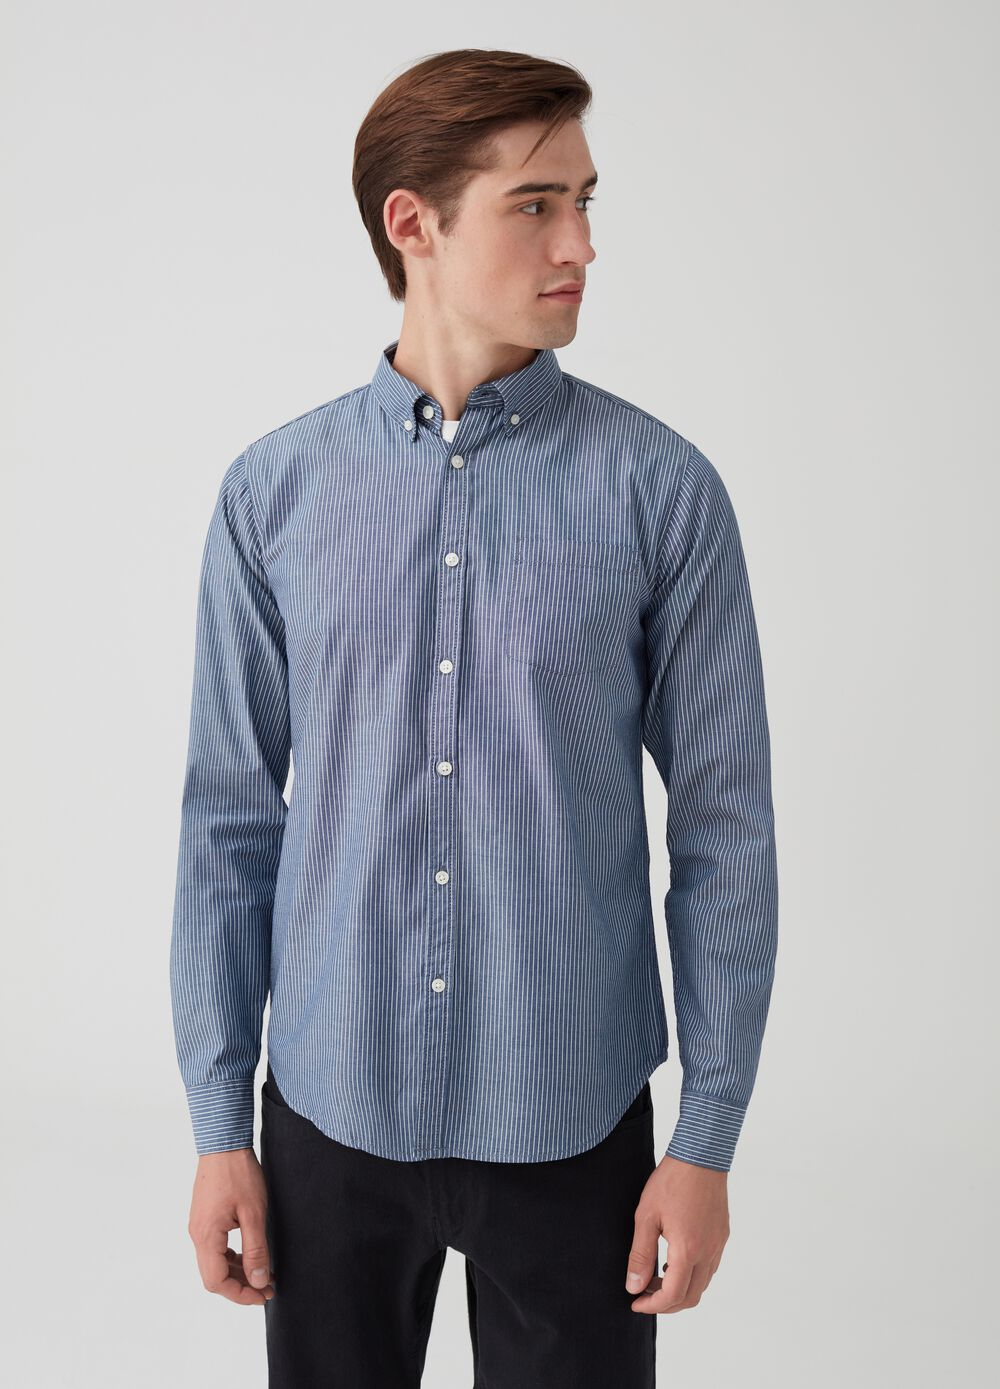 Shirt with button-down collar and pocket